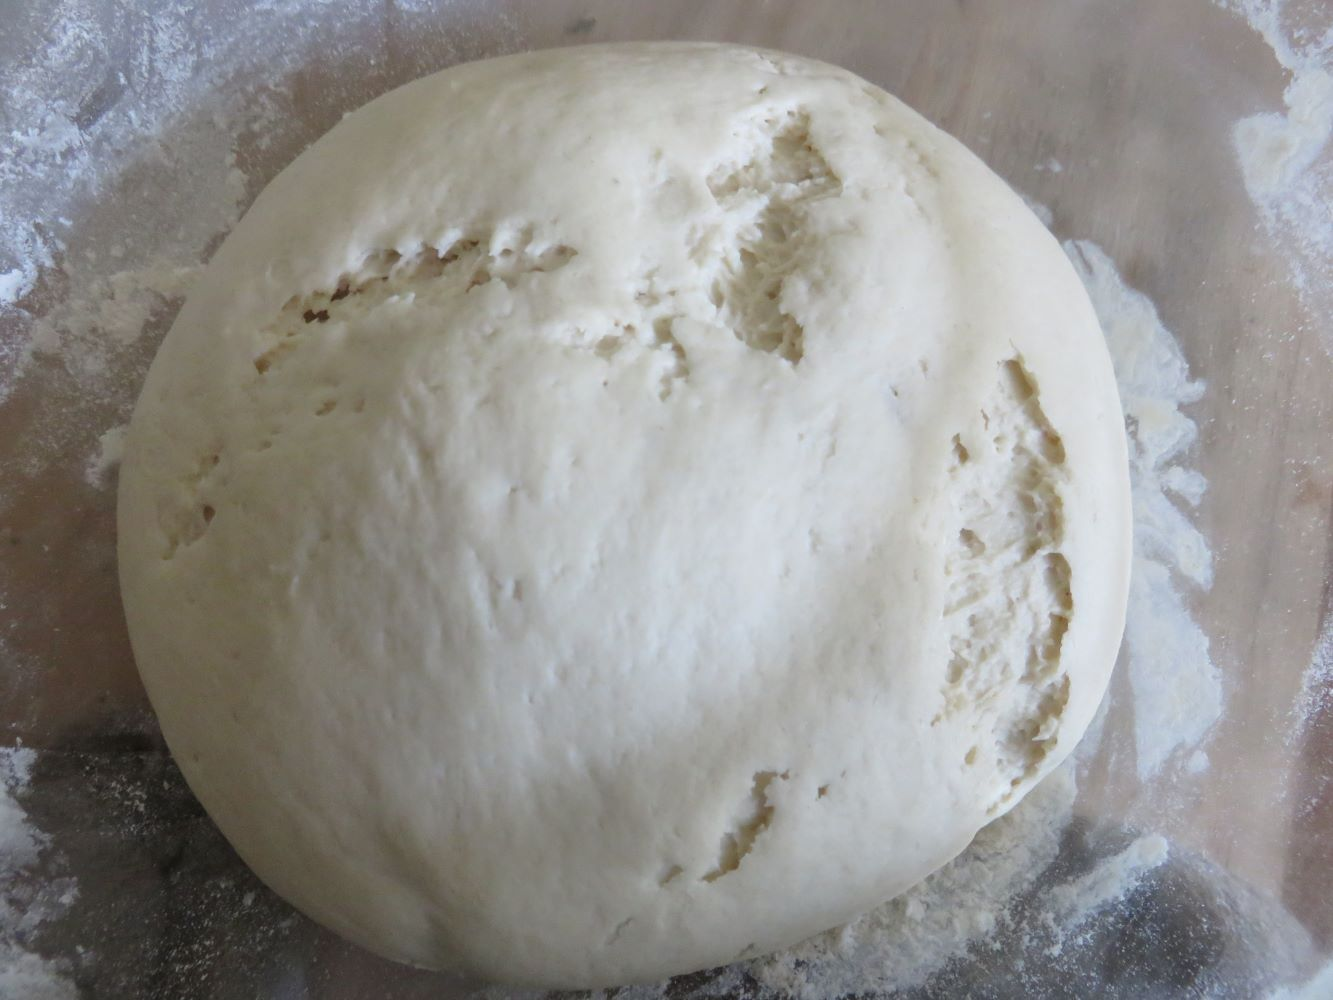 The dough literally bursting its skin. Increased 3 to 4 times.